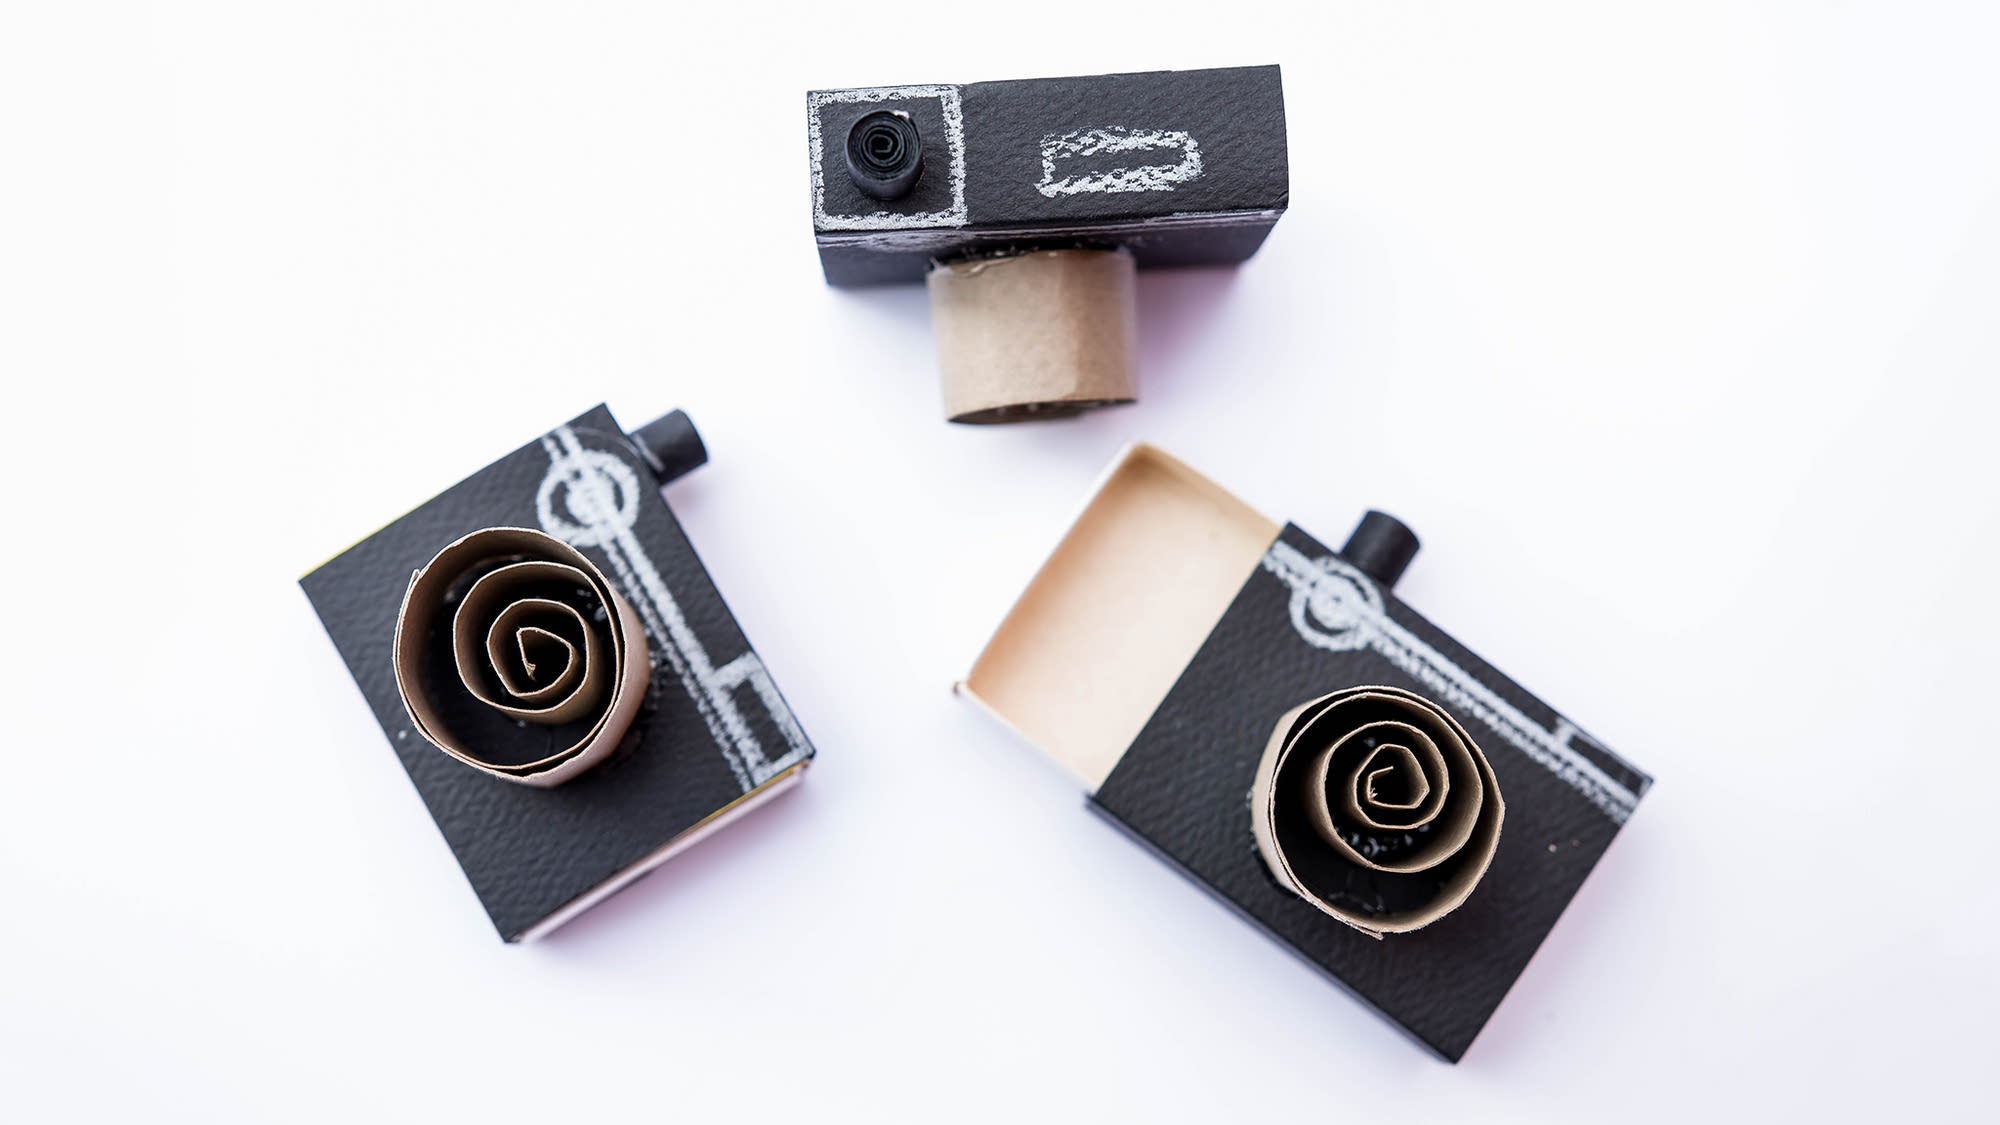 Three cameras made out of cardboard.